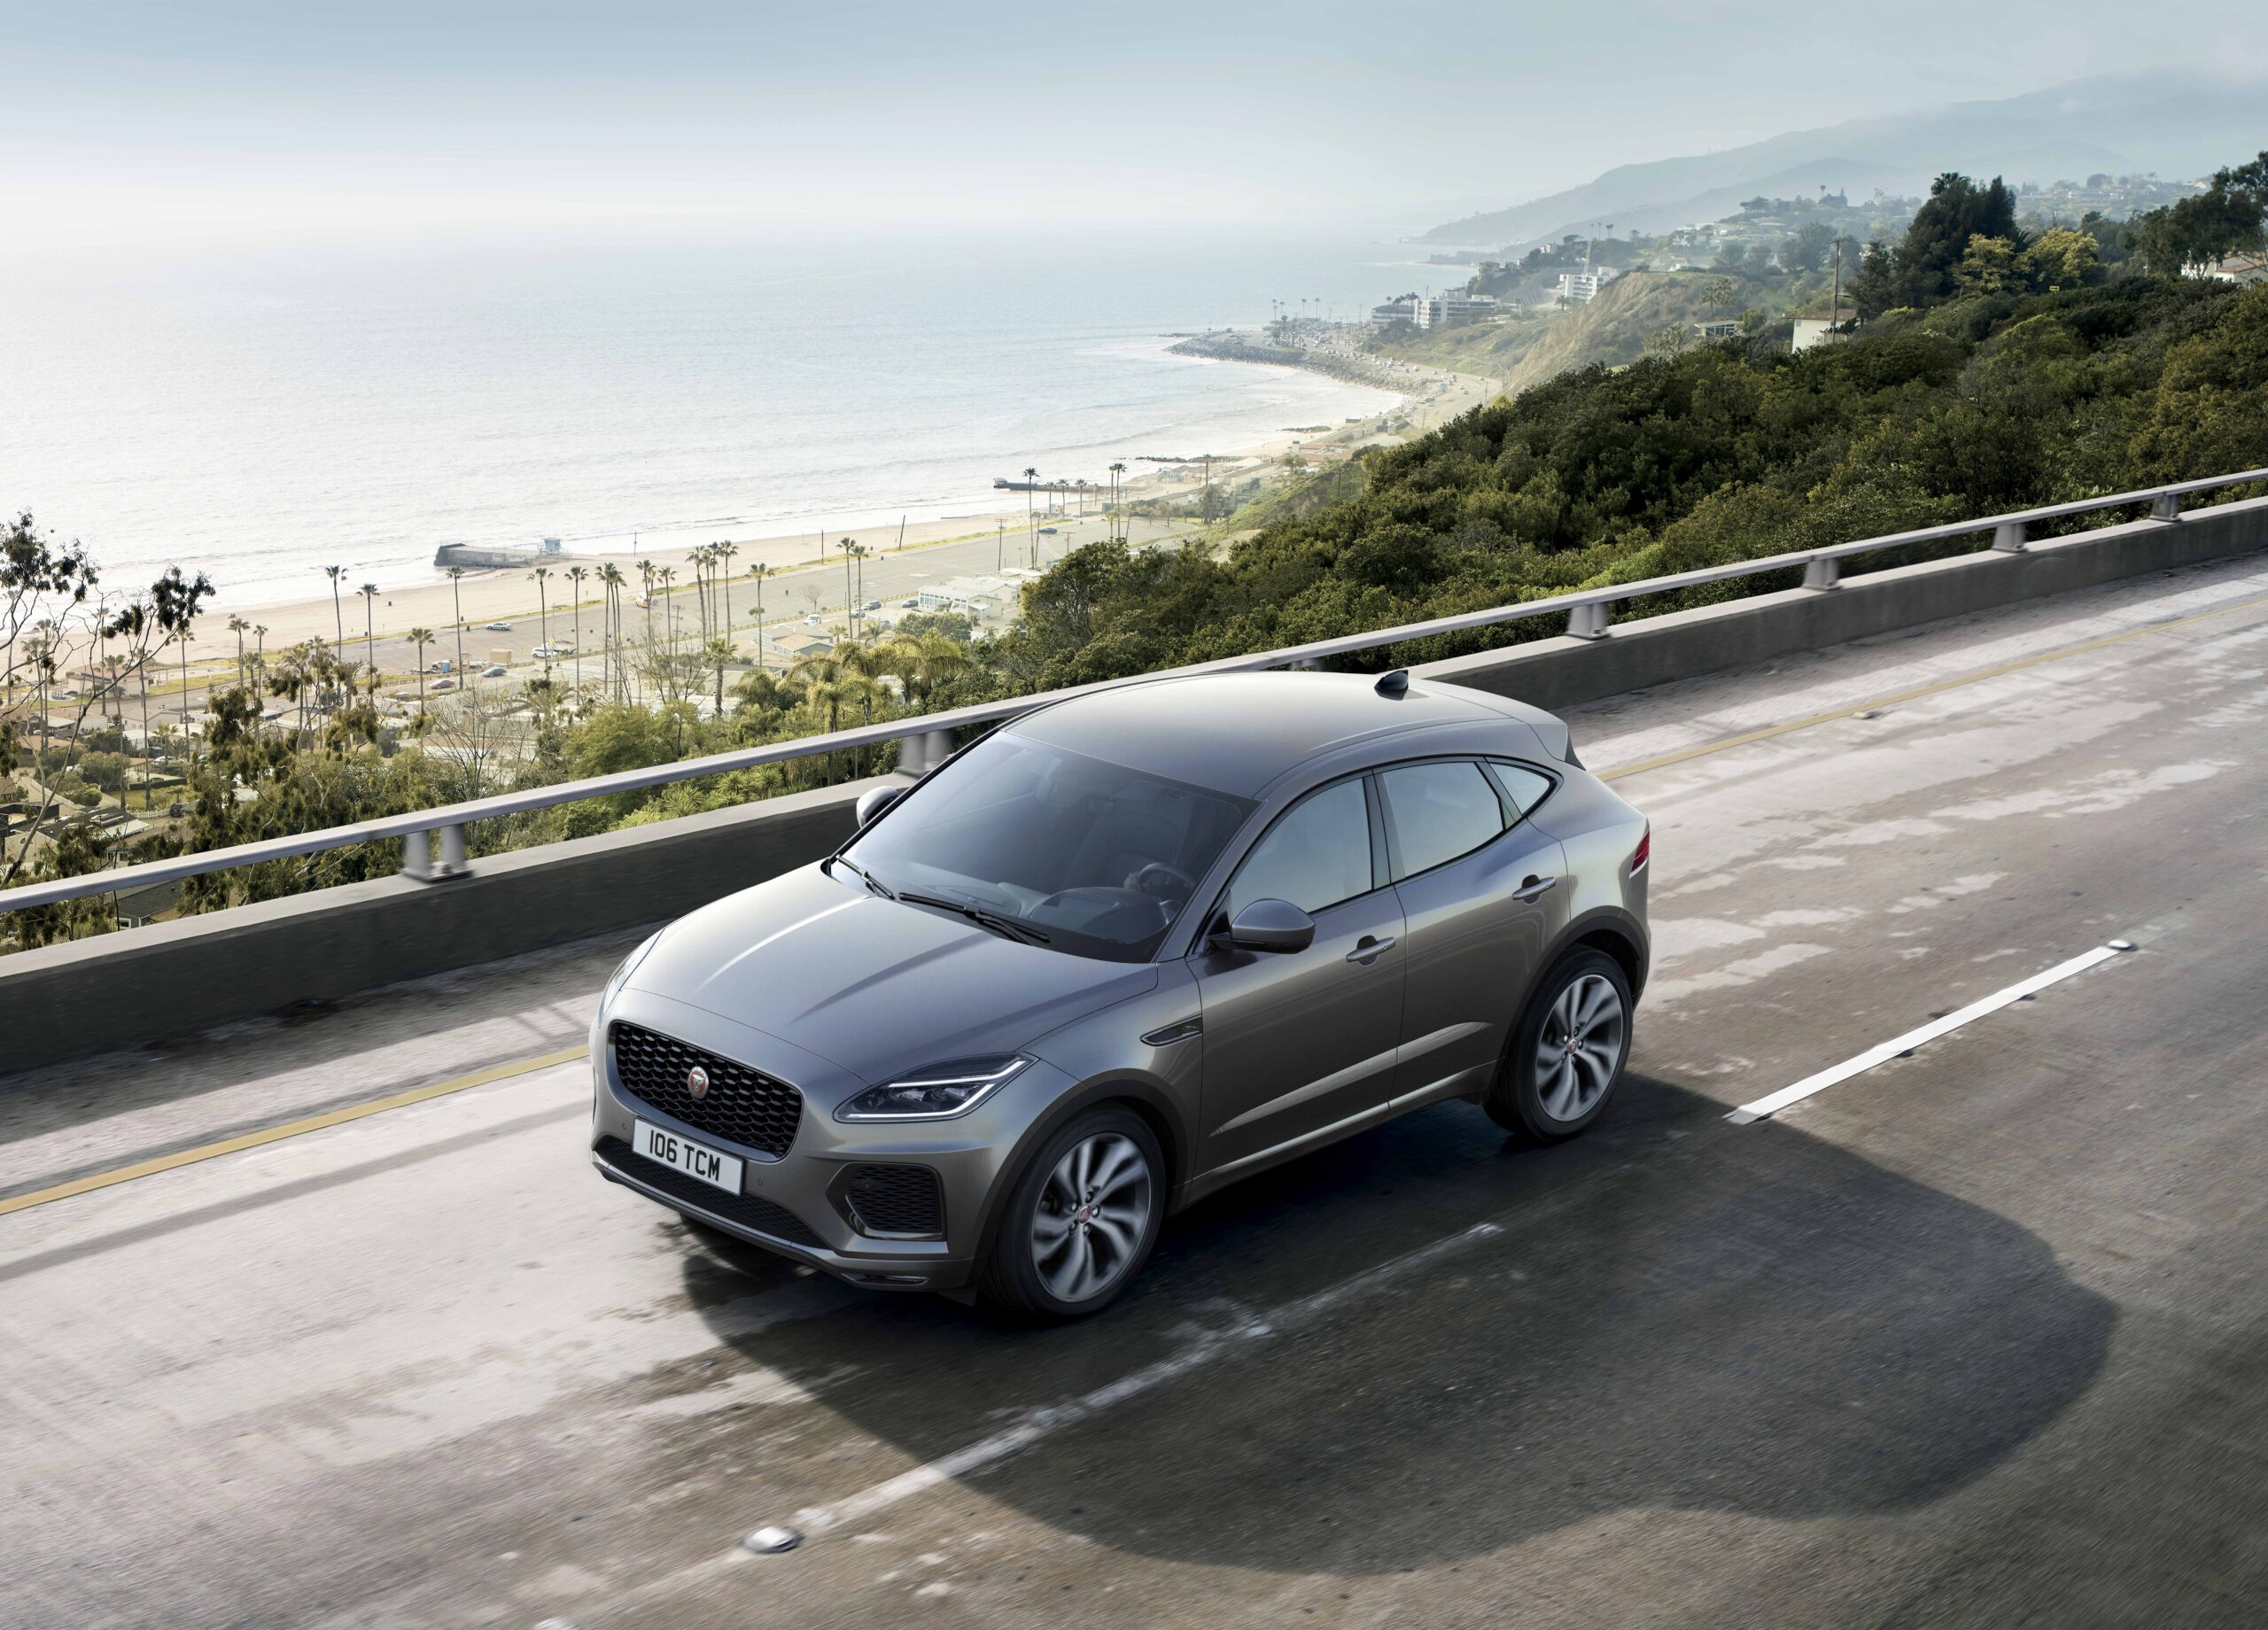 2021 Jaguar E-Pace Launched in UK